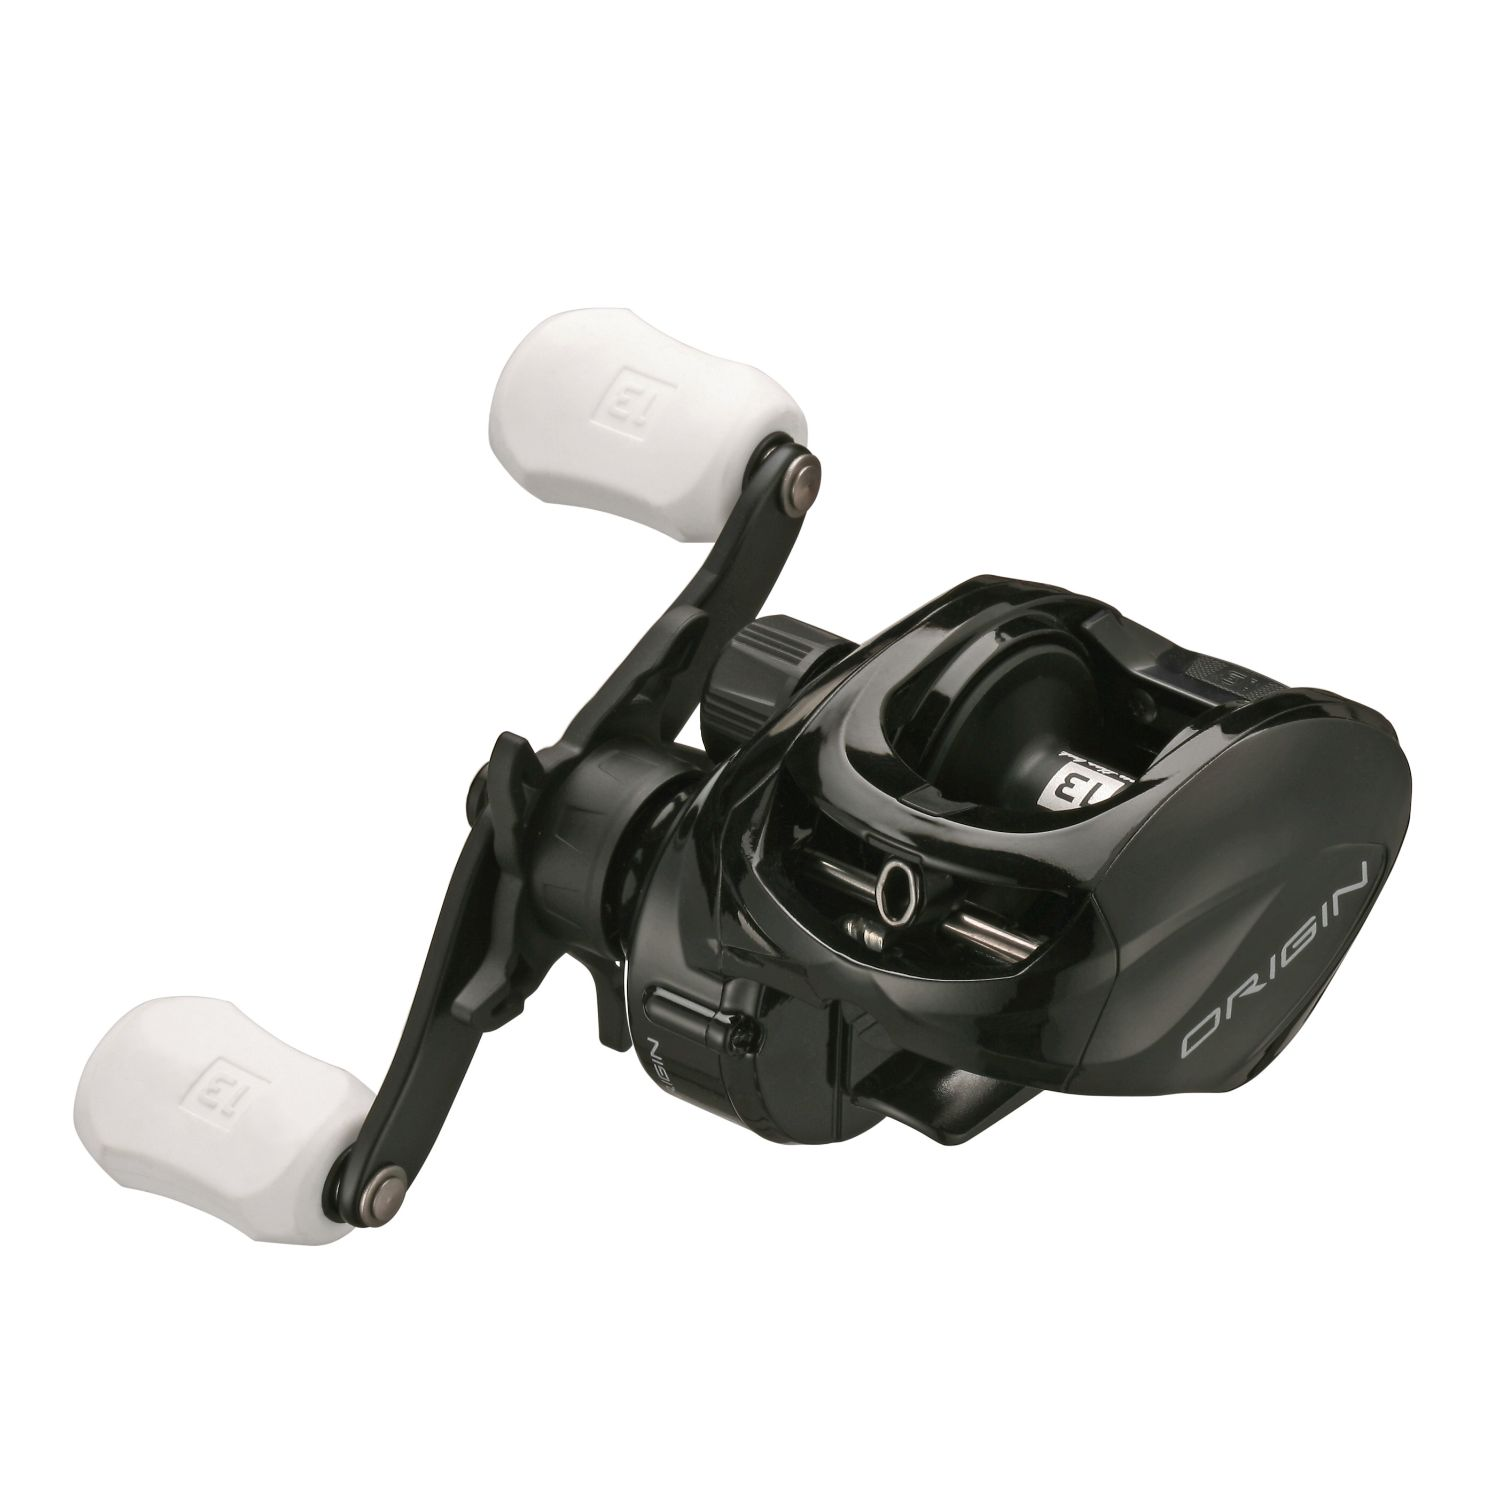 13 Fishing ORIGIN A Baitcast Reel 8.1:1 LH